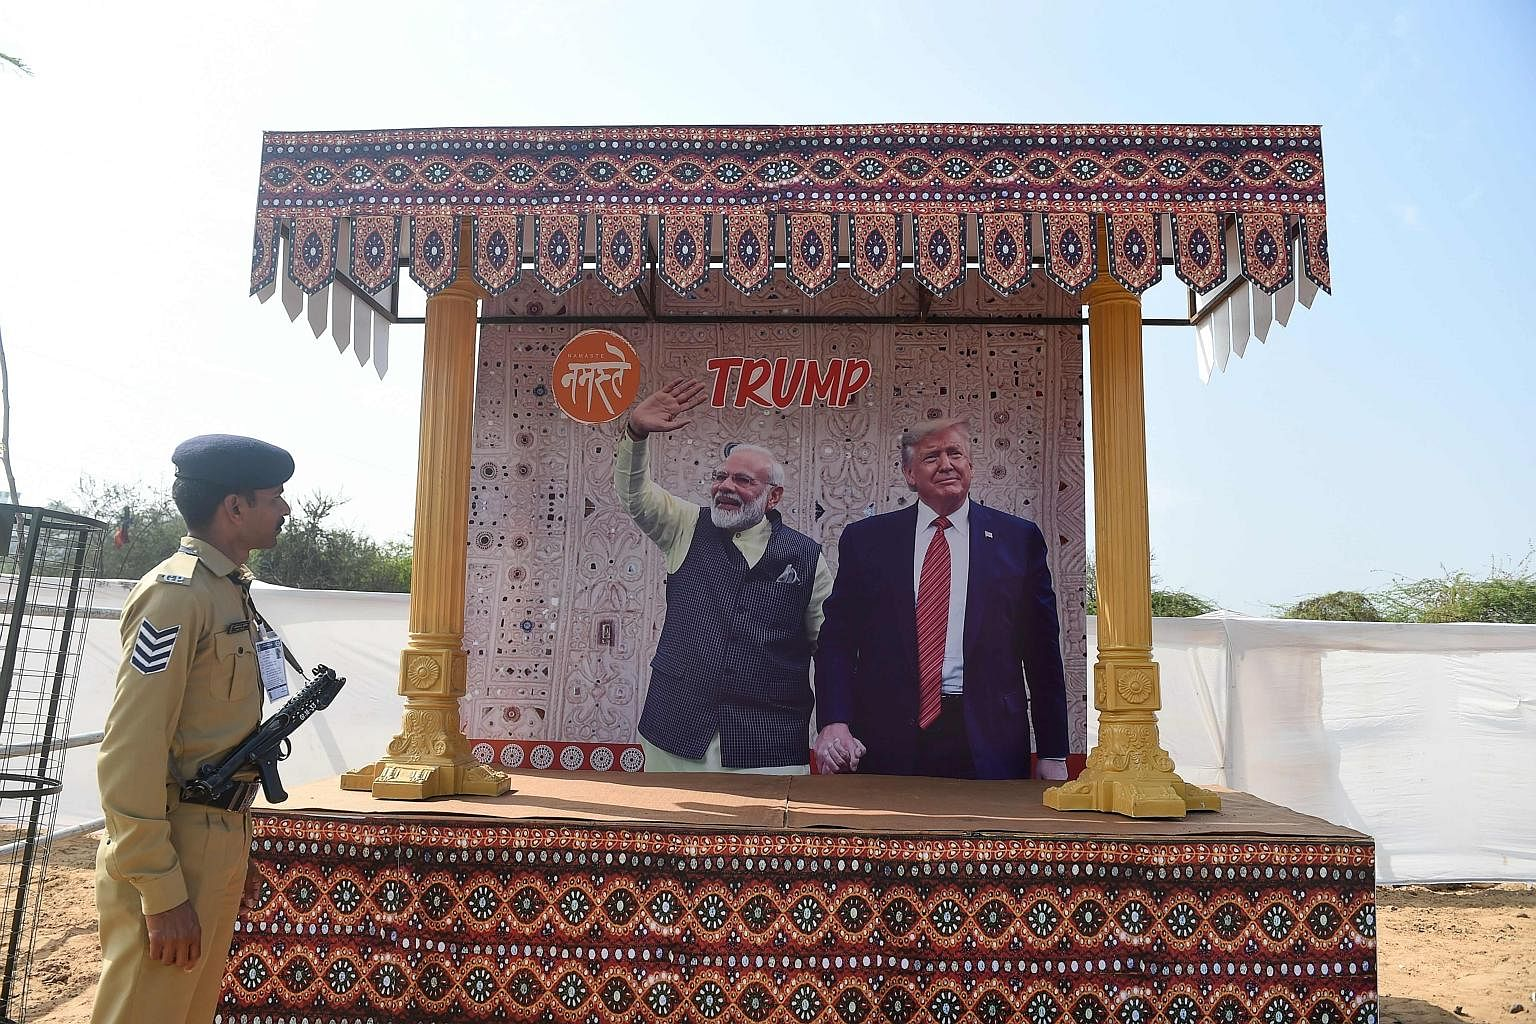 A billboard showing Indian Prime Minister Narendra Modi and US President Donald Trump in Ahmedabad. India's ties with the US have strengthened even as it tries not to escalate tensions with China.